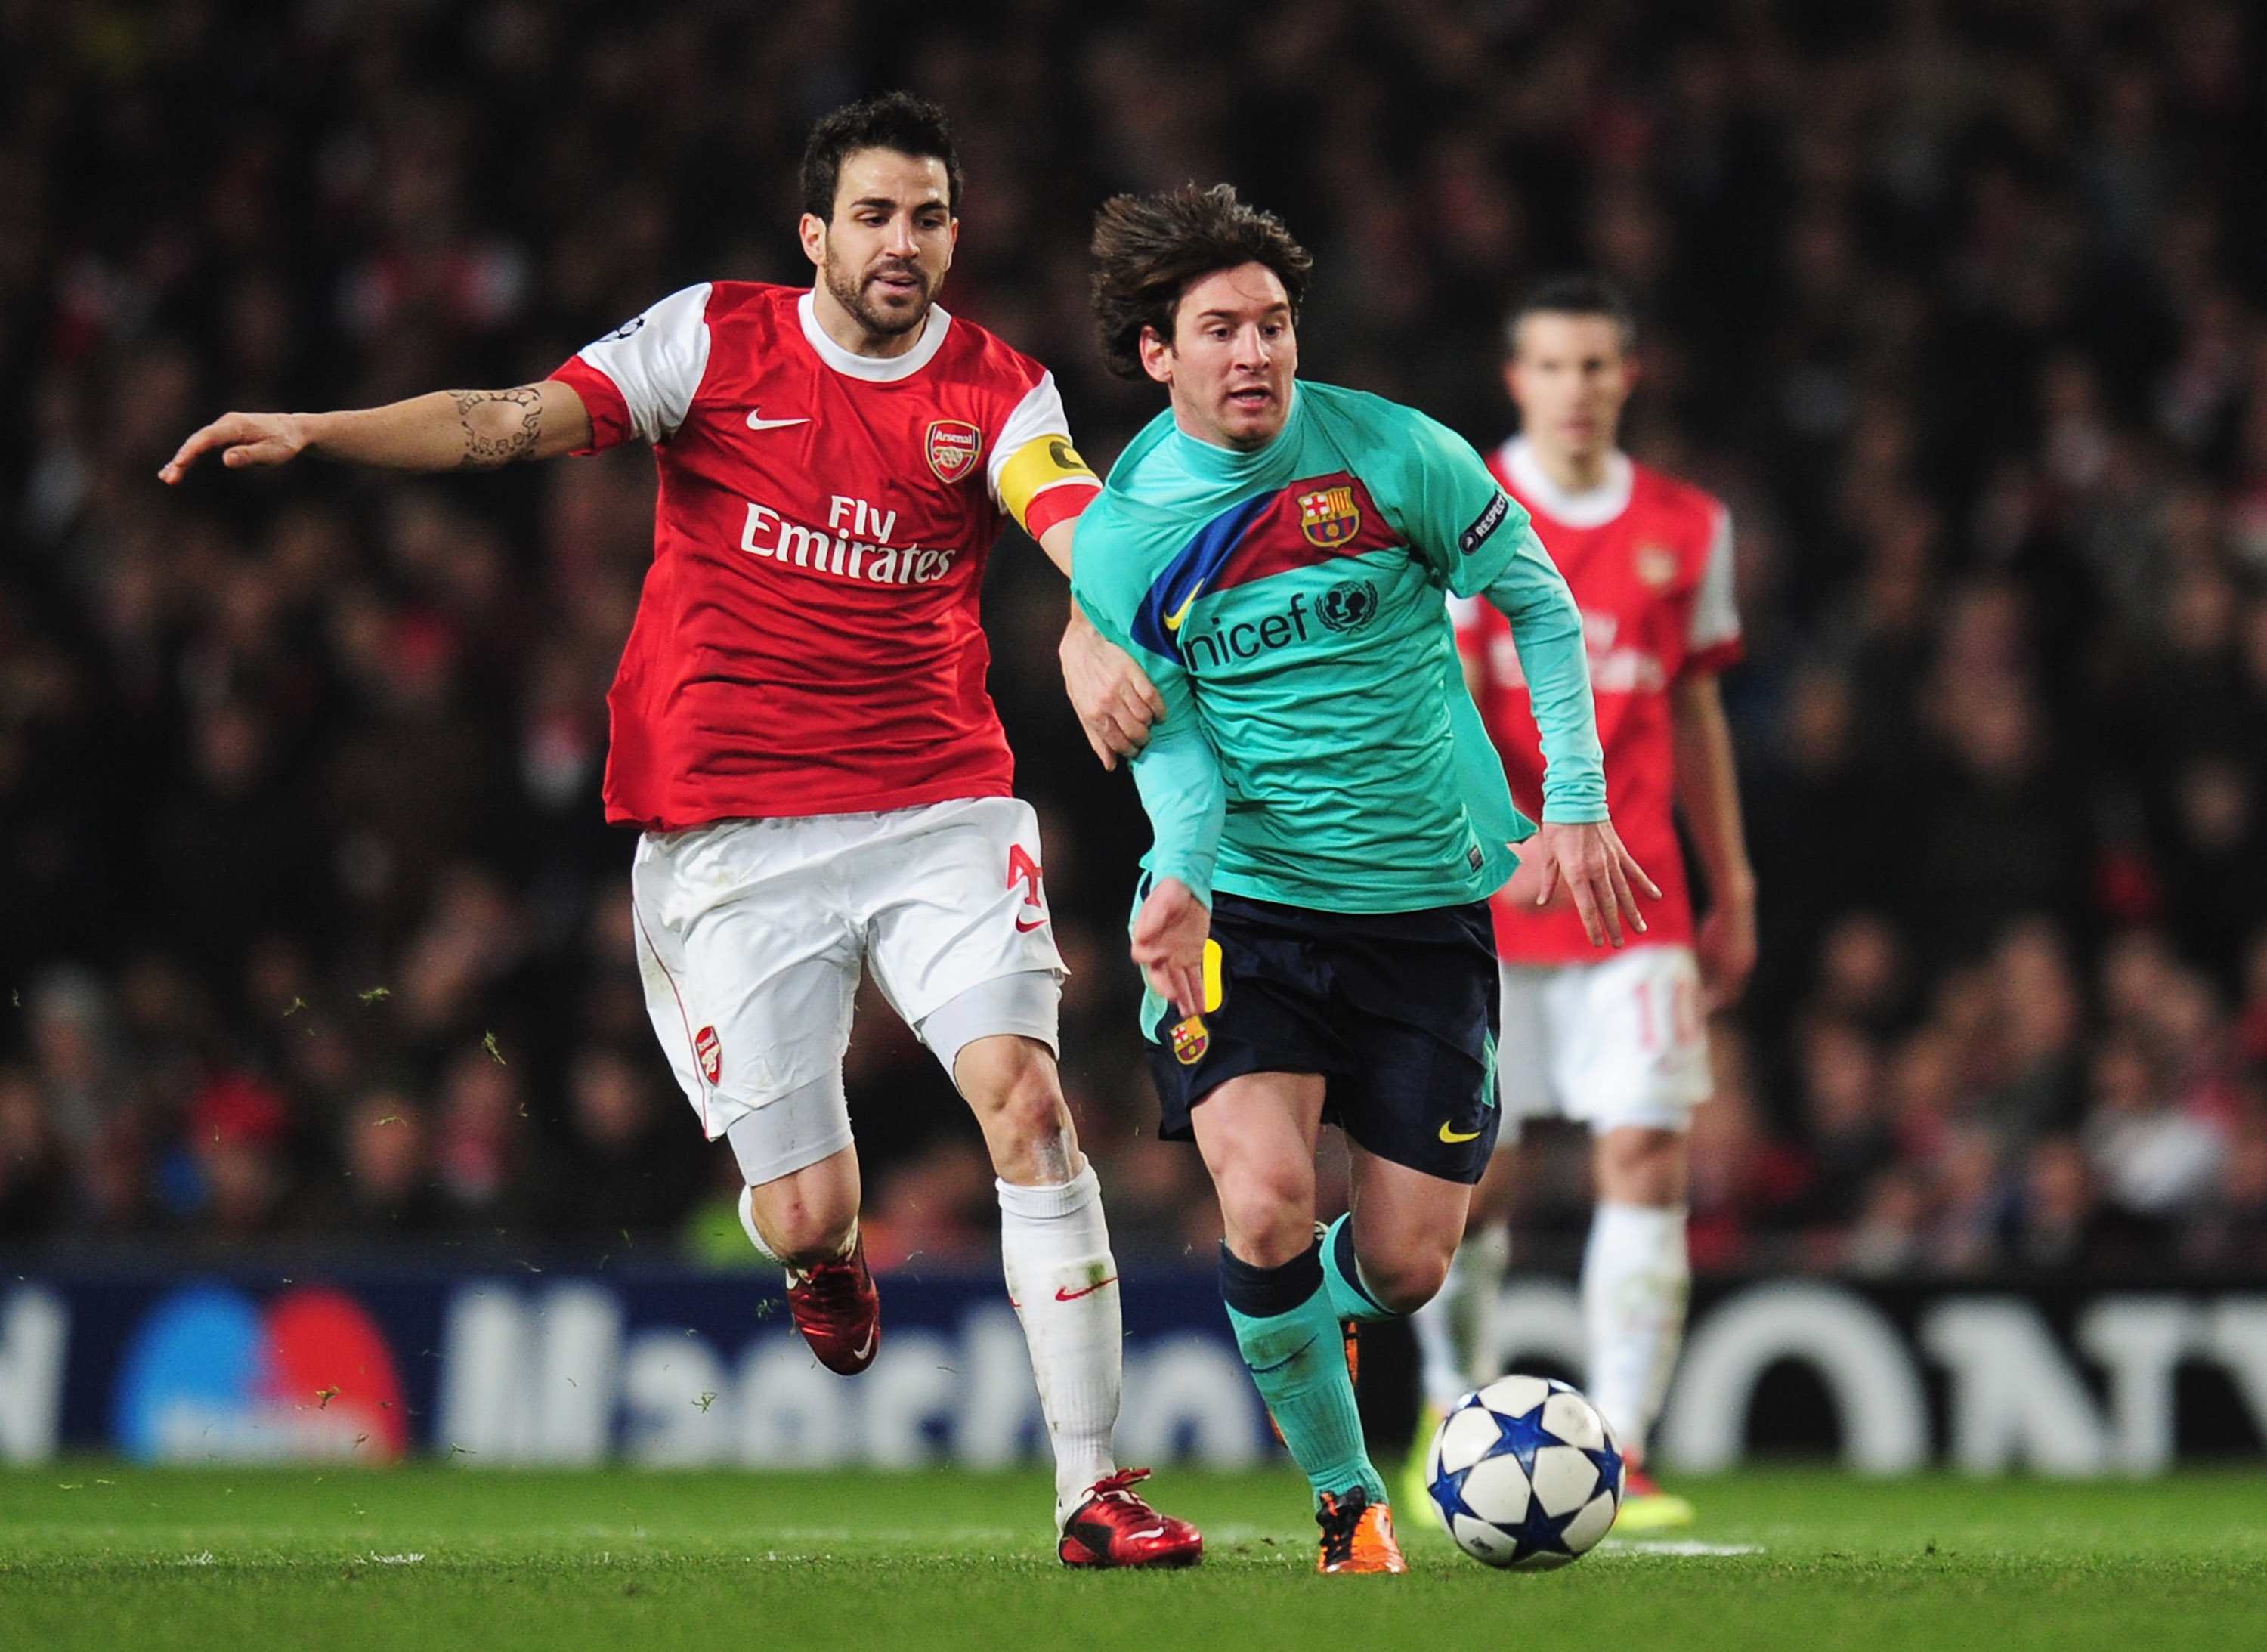 LONDON, ENGLAND - FEBRUARY 16:  Lionel Messi of Barcelona is challenged by Cesc Fabregas of Arsenal during the UEFA Champions League round of 16 first leg match between Arsenal and Barcelona at the Emirates Stadium on February 16, 2011 in London, England.